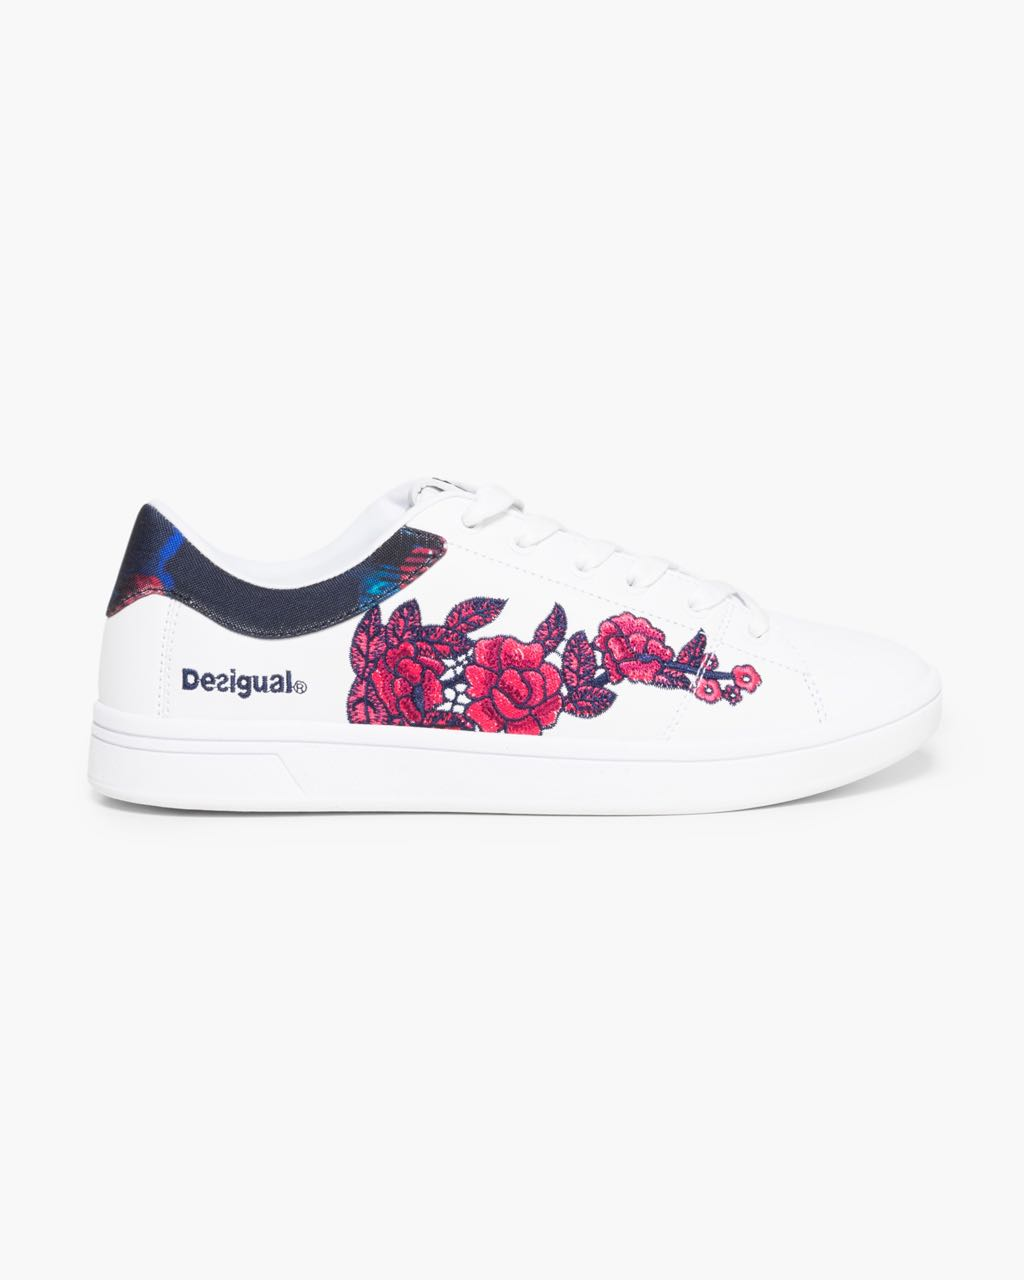 17WKRW28_5149 Desigual Running Shoes PU Retro Court Buy Online